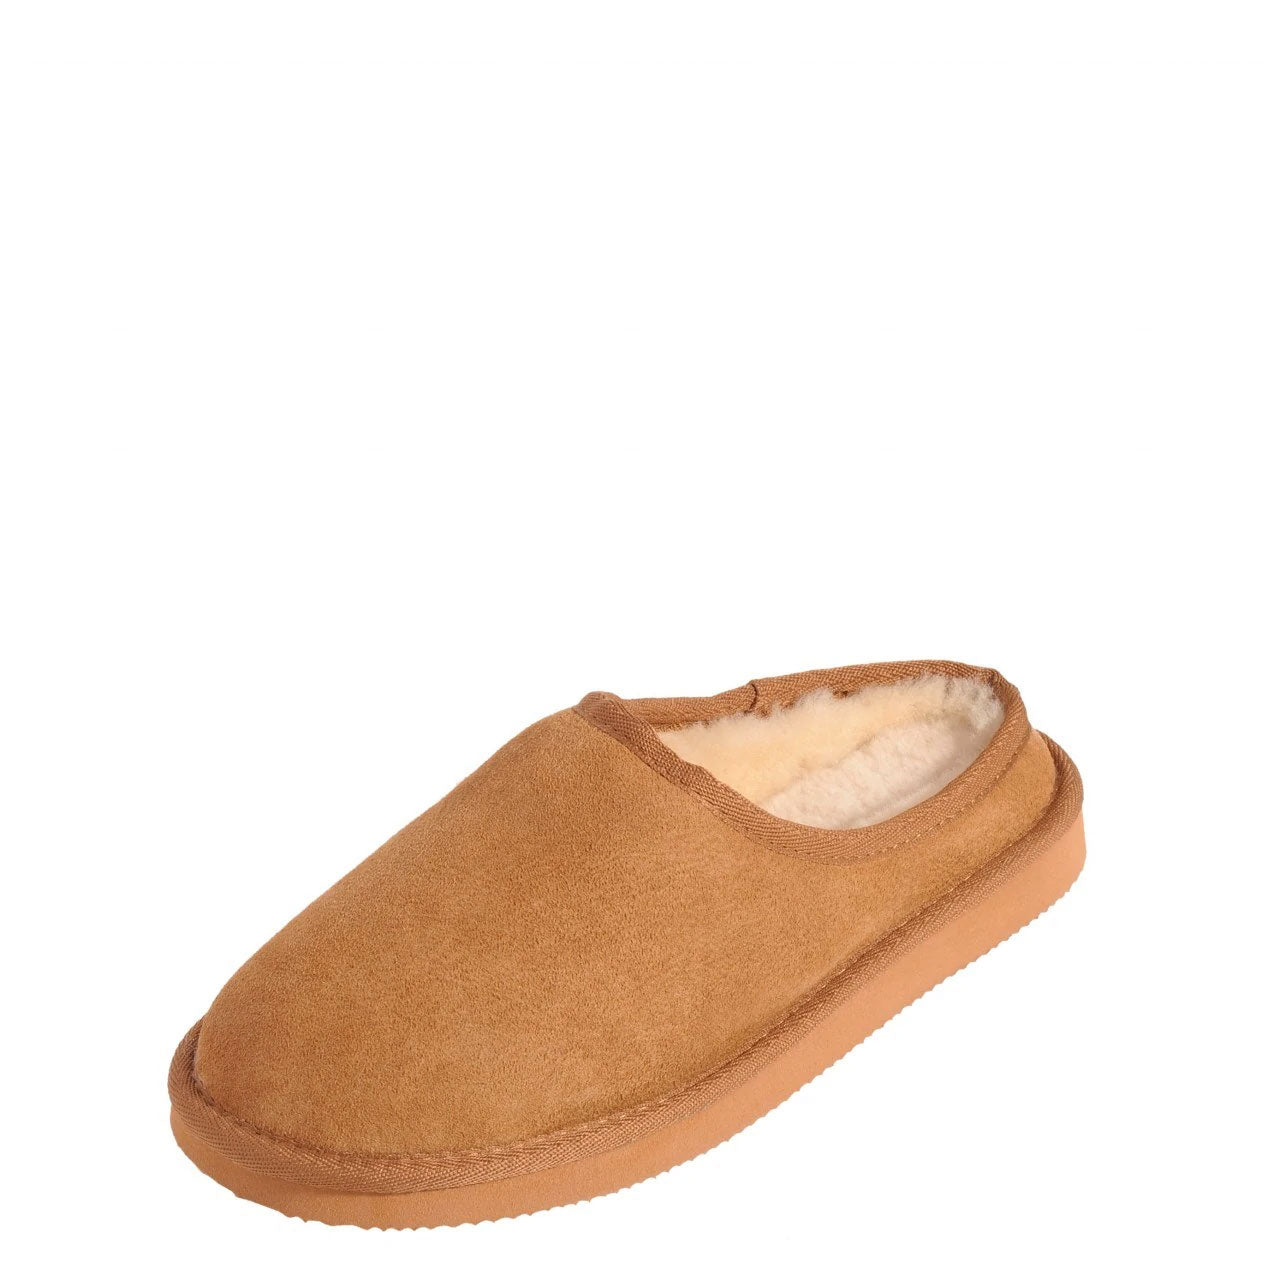 Mi Woollies Benmore Slipper